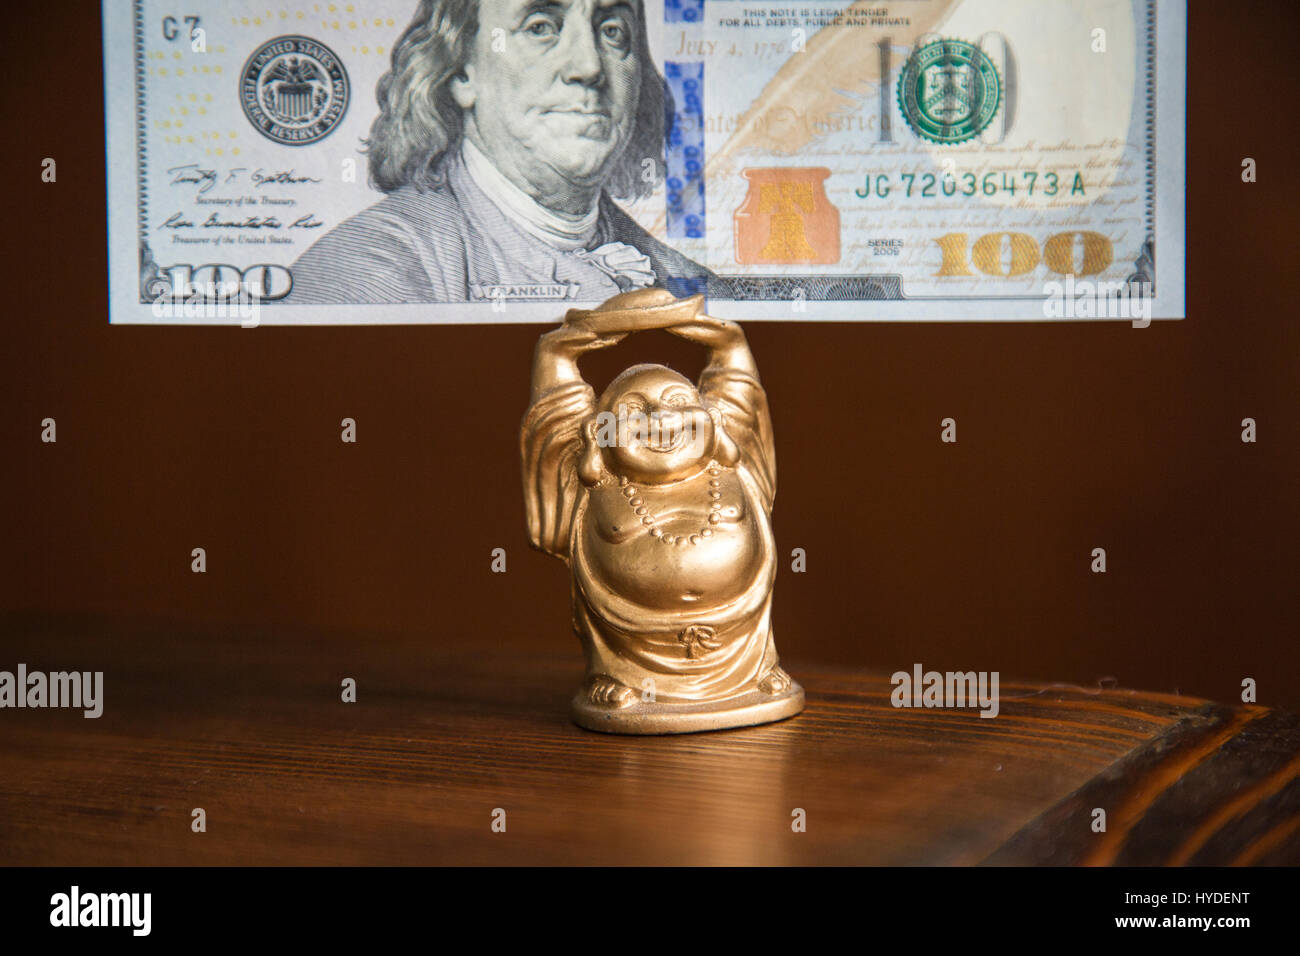 a small golden buddha figurine standing on a wooden table holds a one hundred dollar bill in United States currency - Stock Image